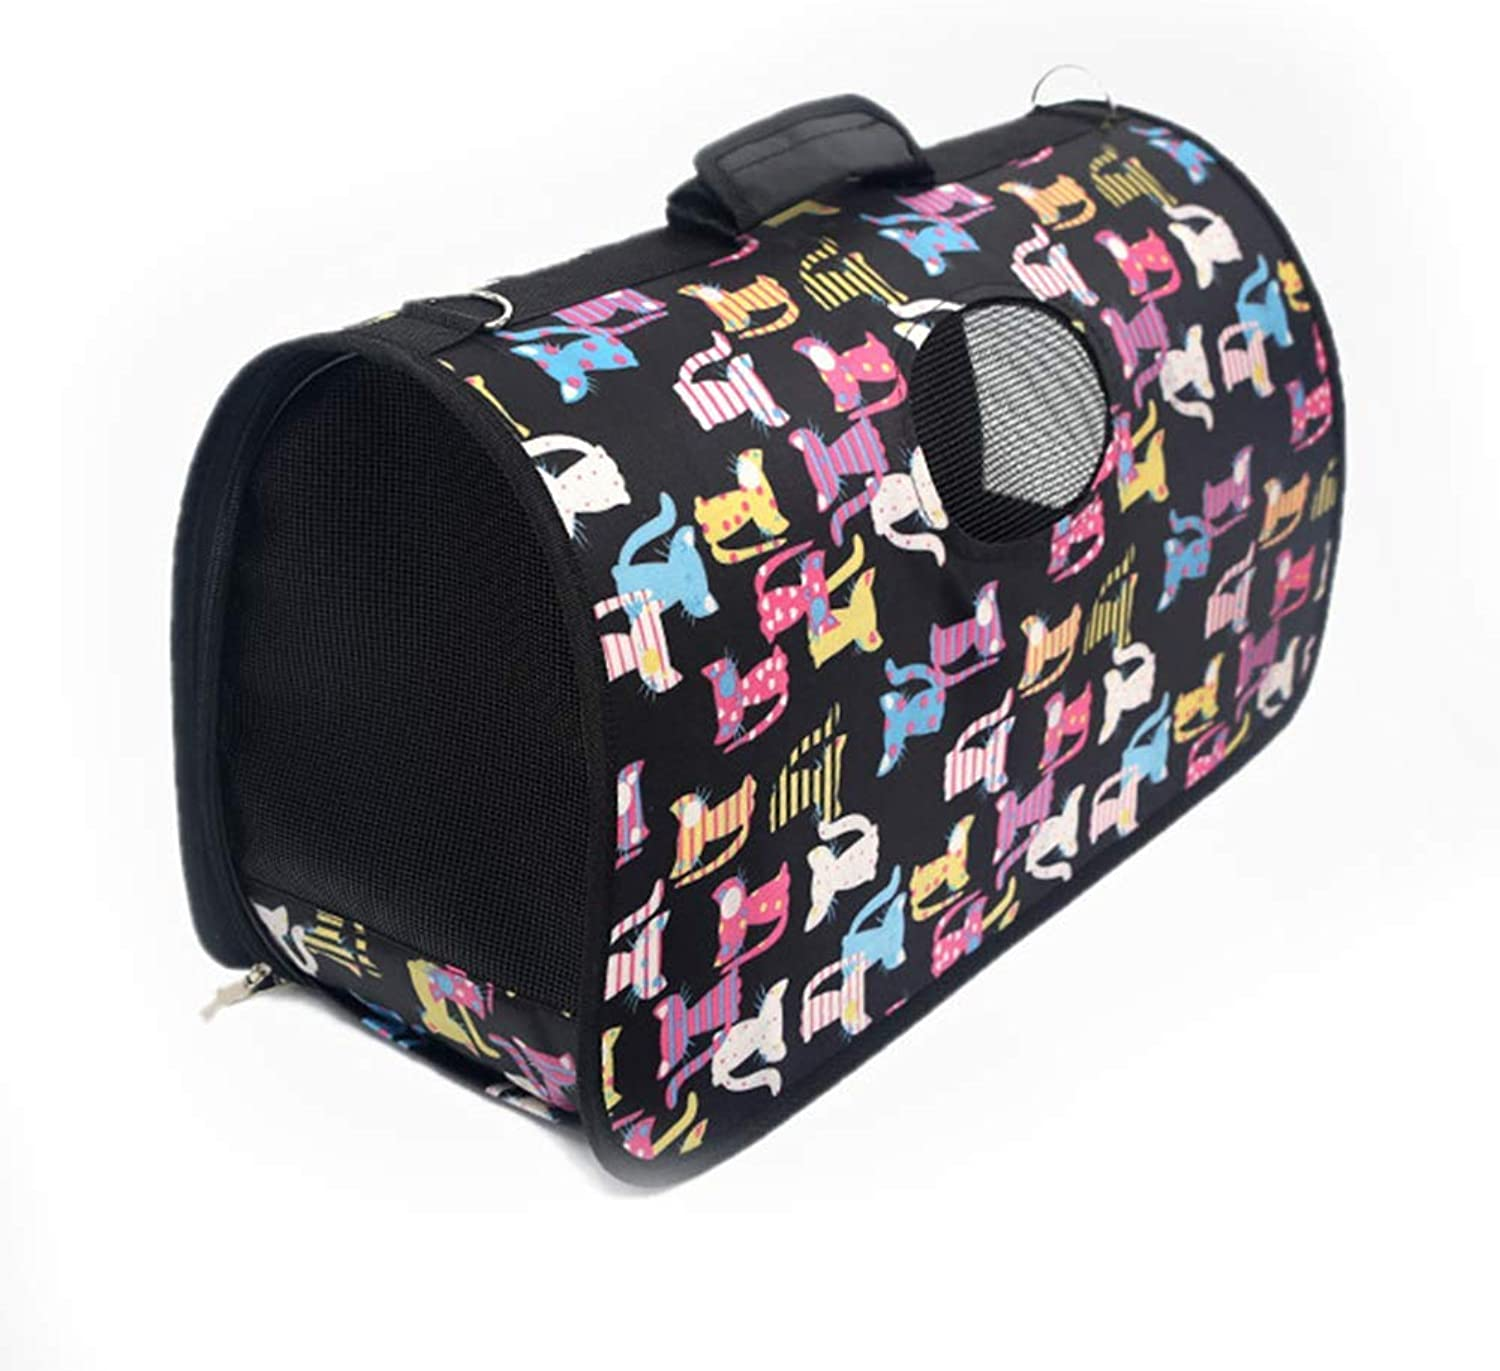 Pet Oxford Portable Dog Bag,Cute Pattern Kennel Breathable Portable Foldable Travel Backpacks